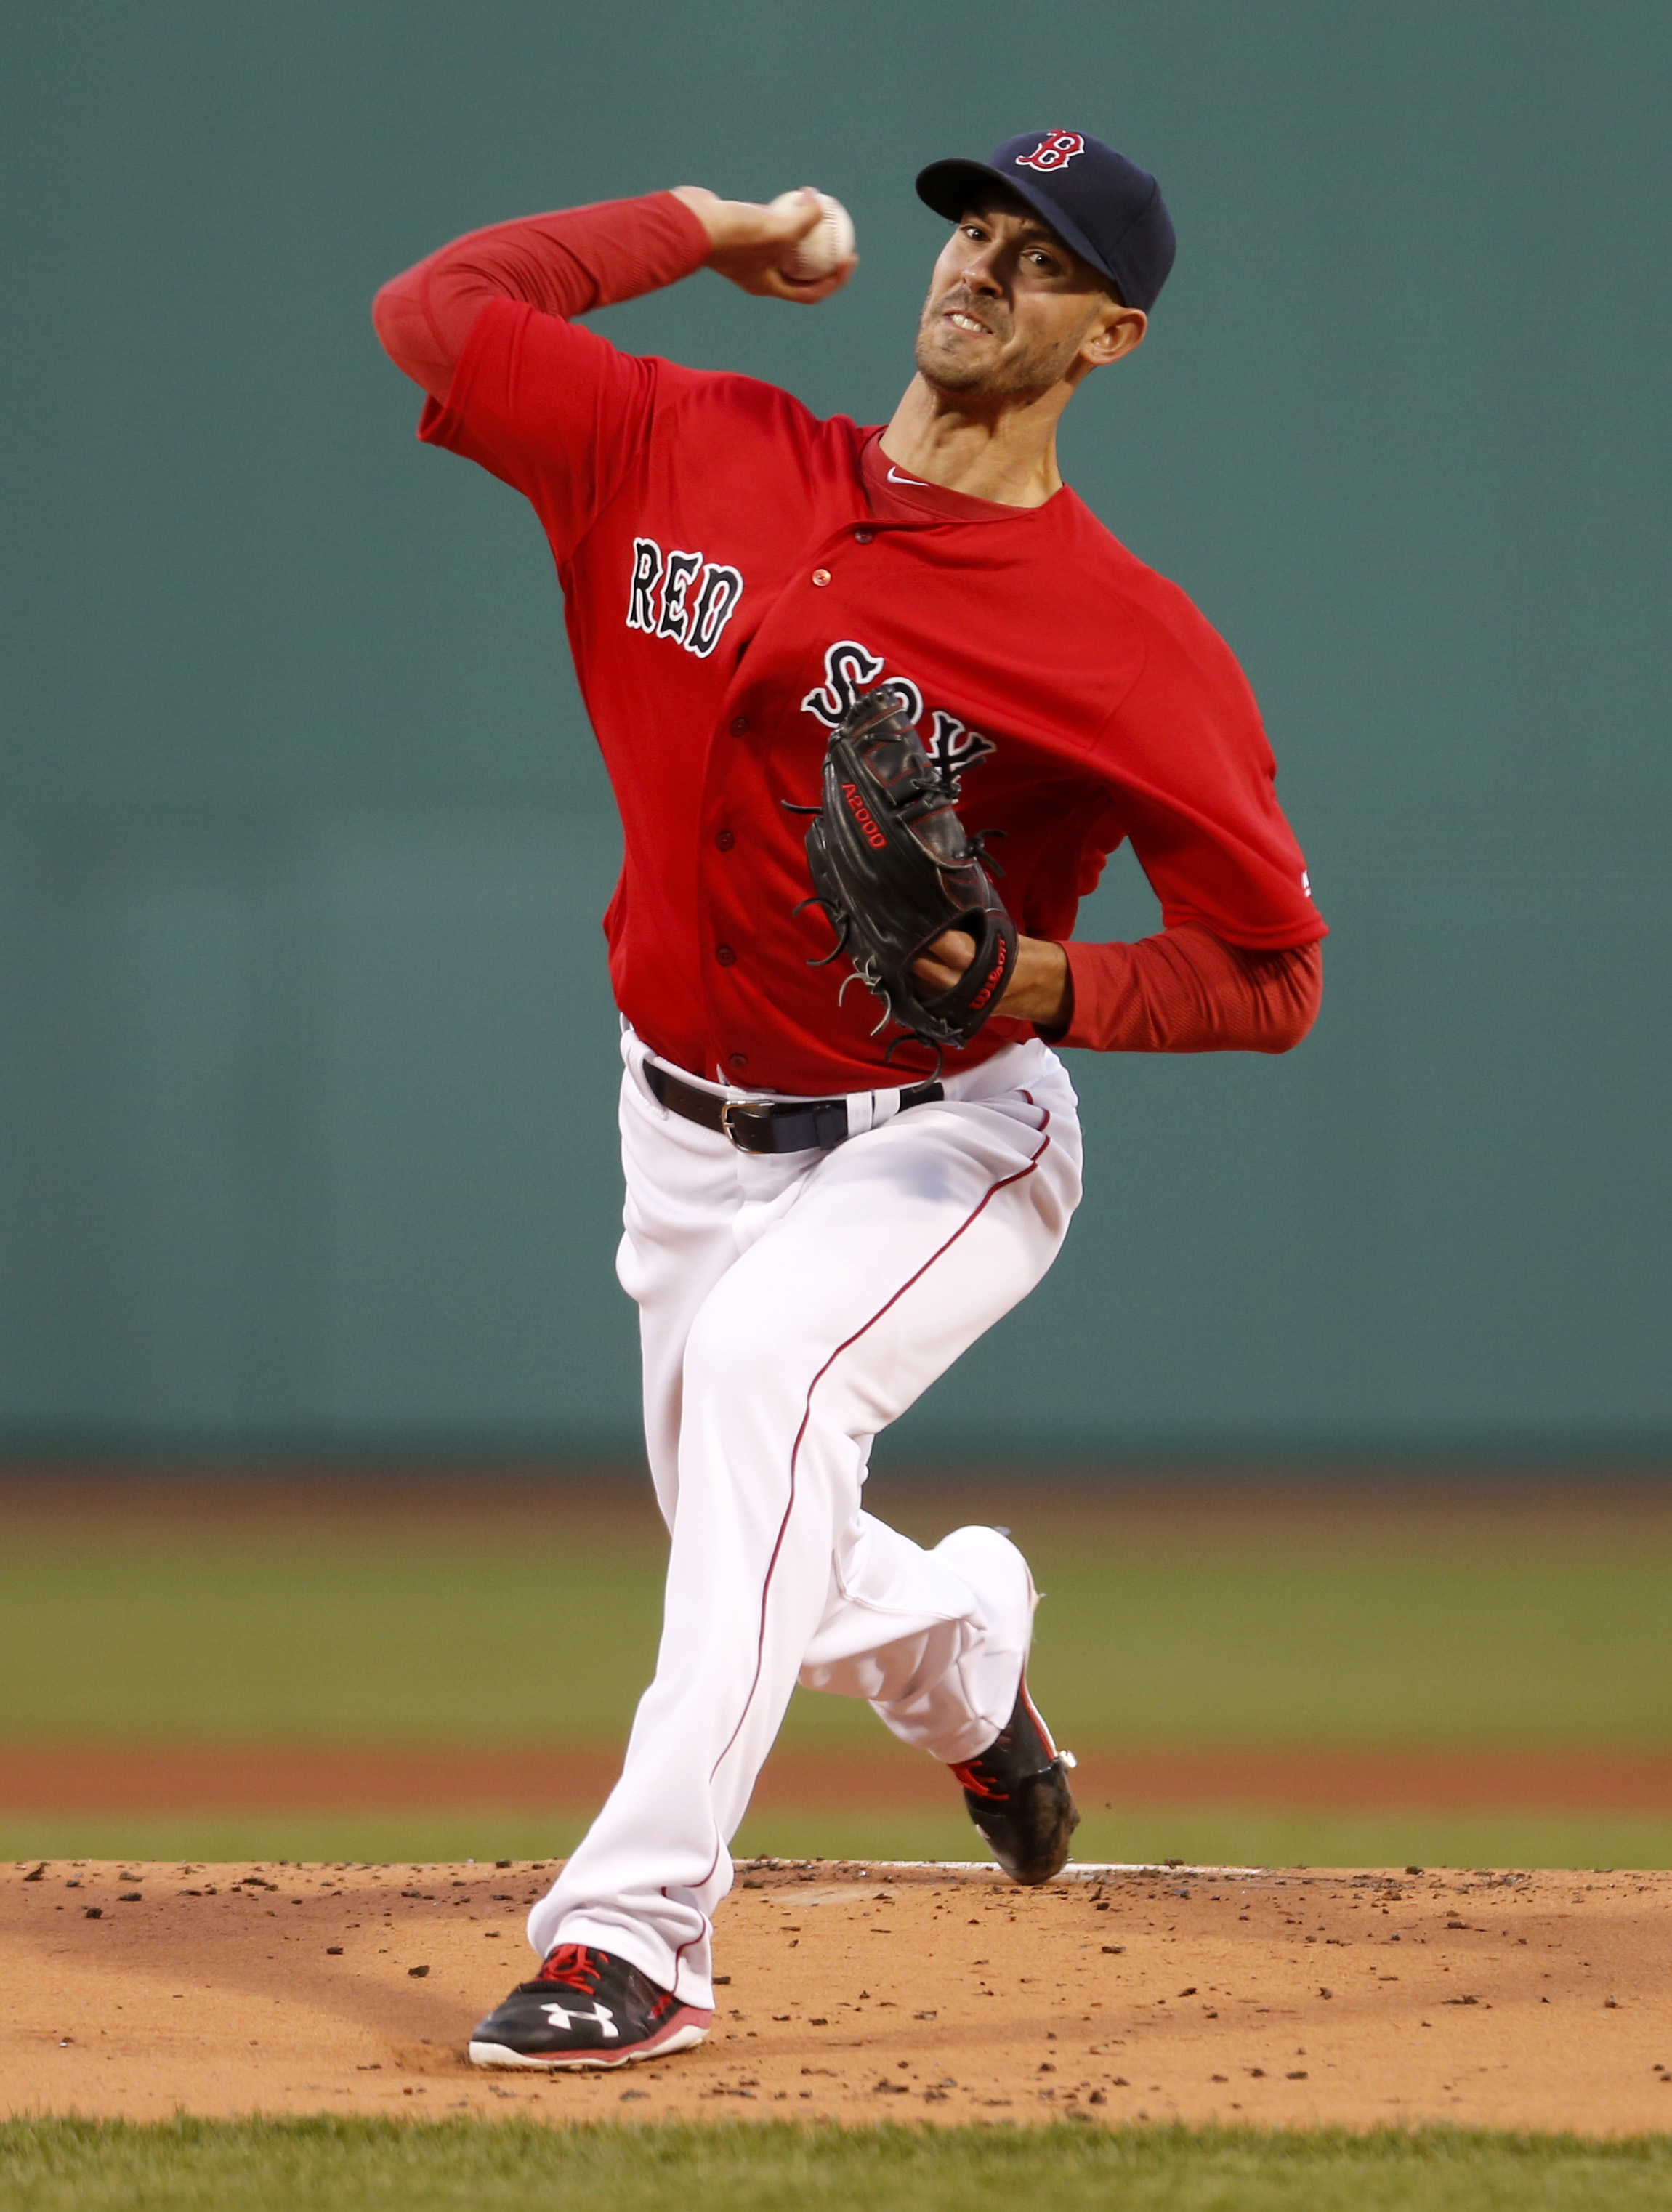 Boston Red Sox starting pitcher Rick Porcello throws during the first inning of a baseball game against the Toronto Blue Jays at Fenway Park, Friday, April 15, 2016, in Boston. (AP Photo/Mary Schwalm)